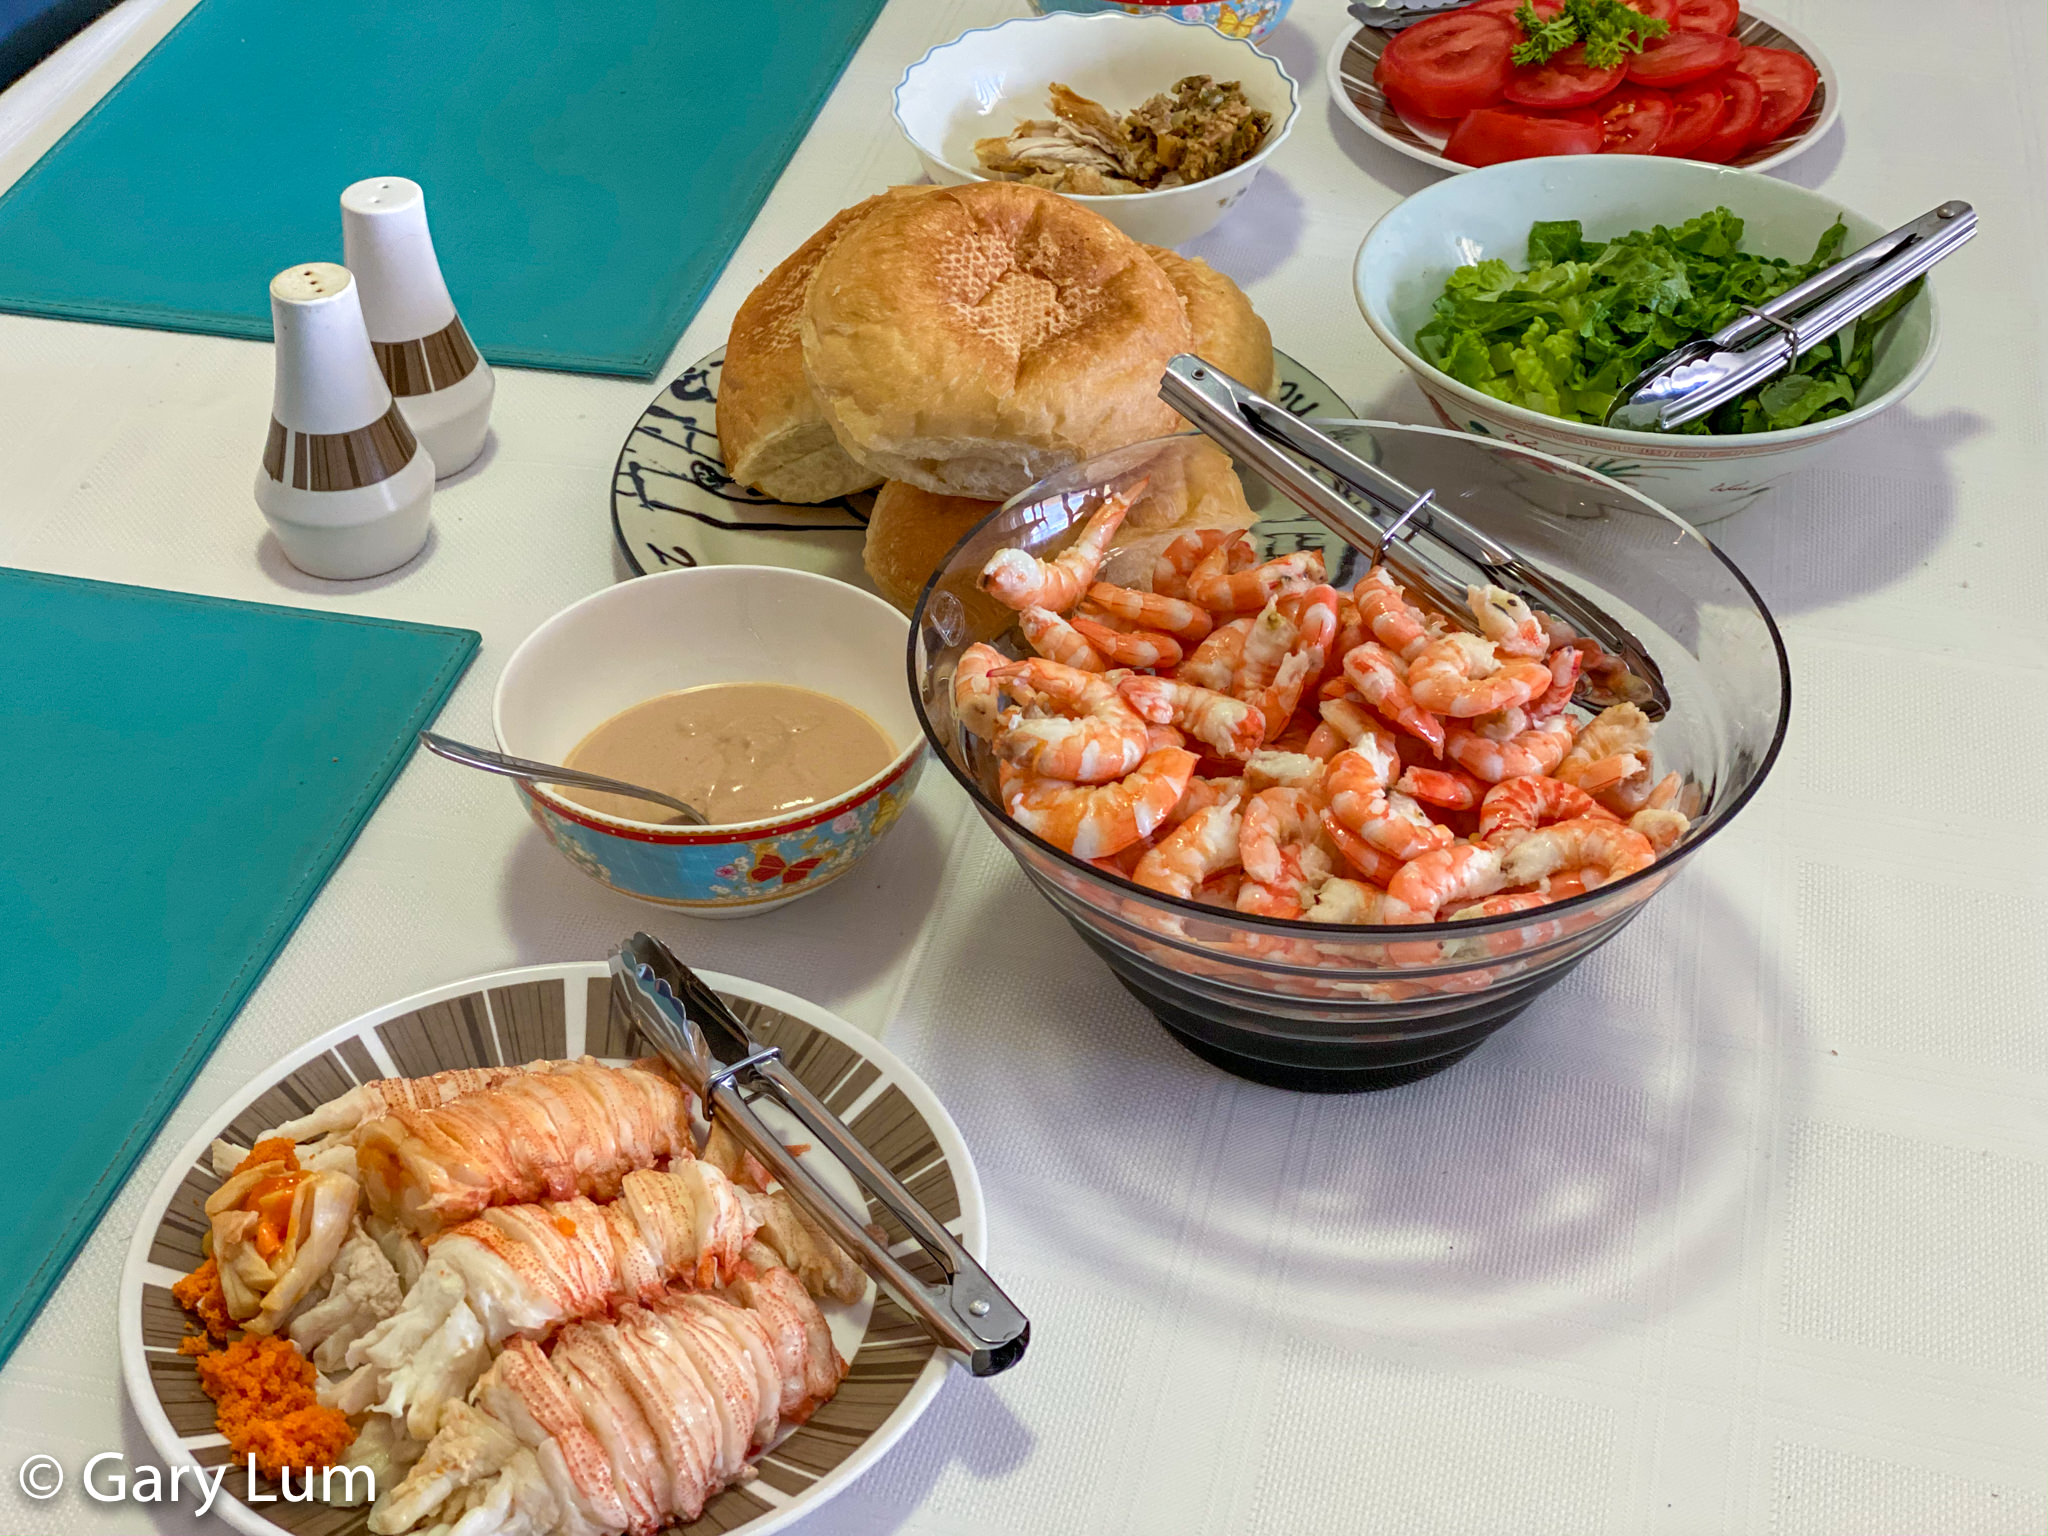 New Year's Day 2020 lunch. Moreton Bay Bugs and Endeavour prawns with fresh white bread rolls. Gary Lum.